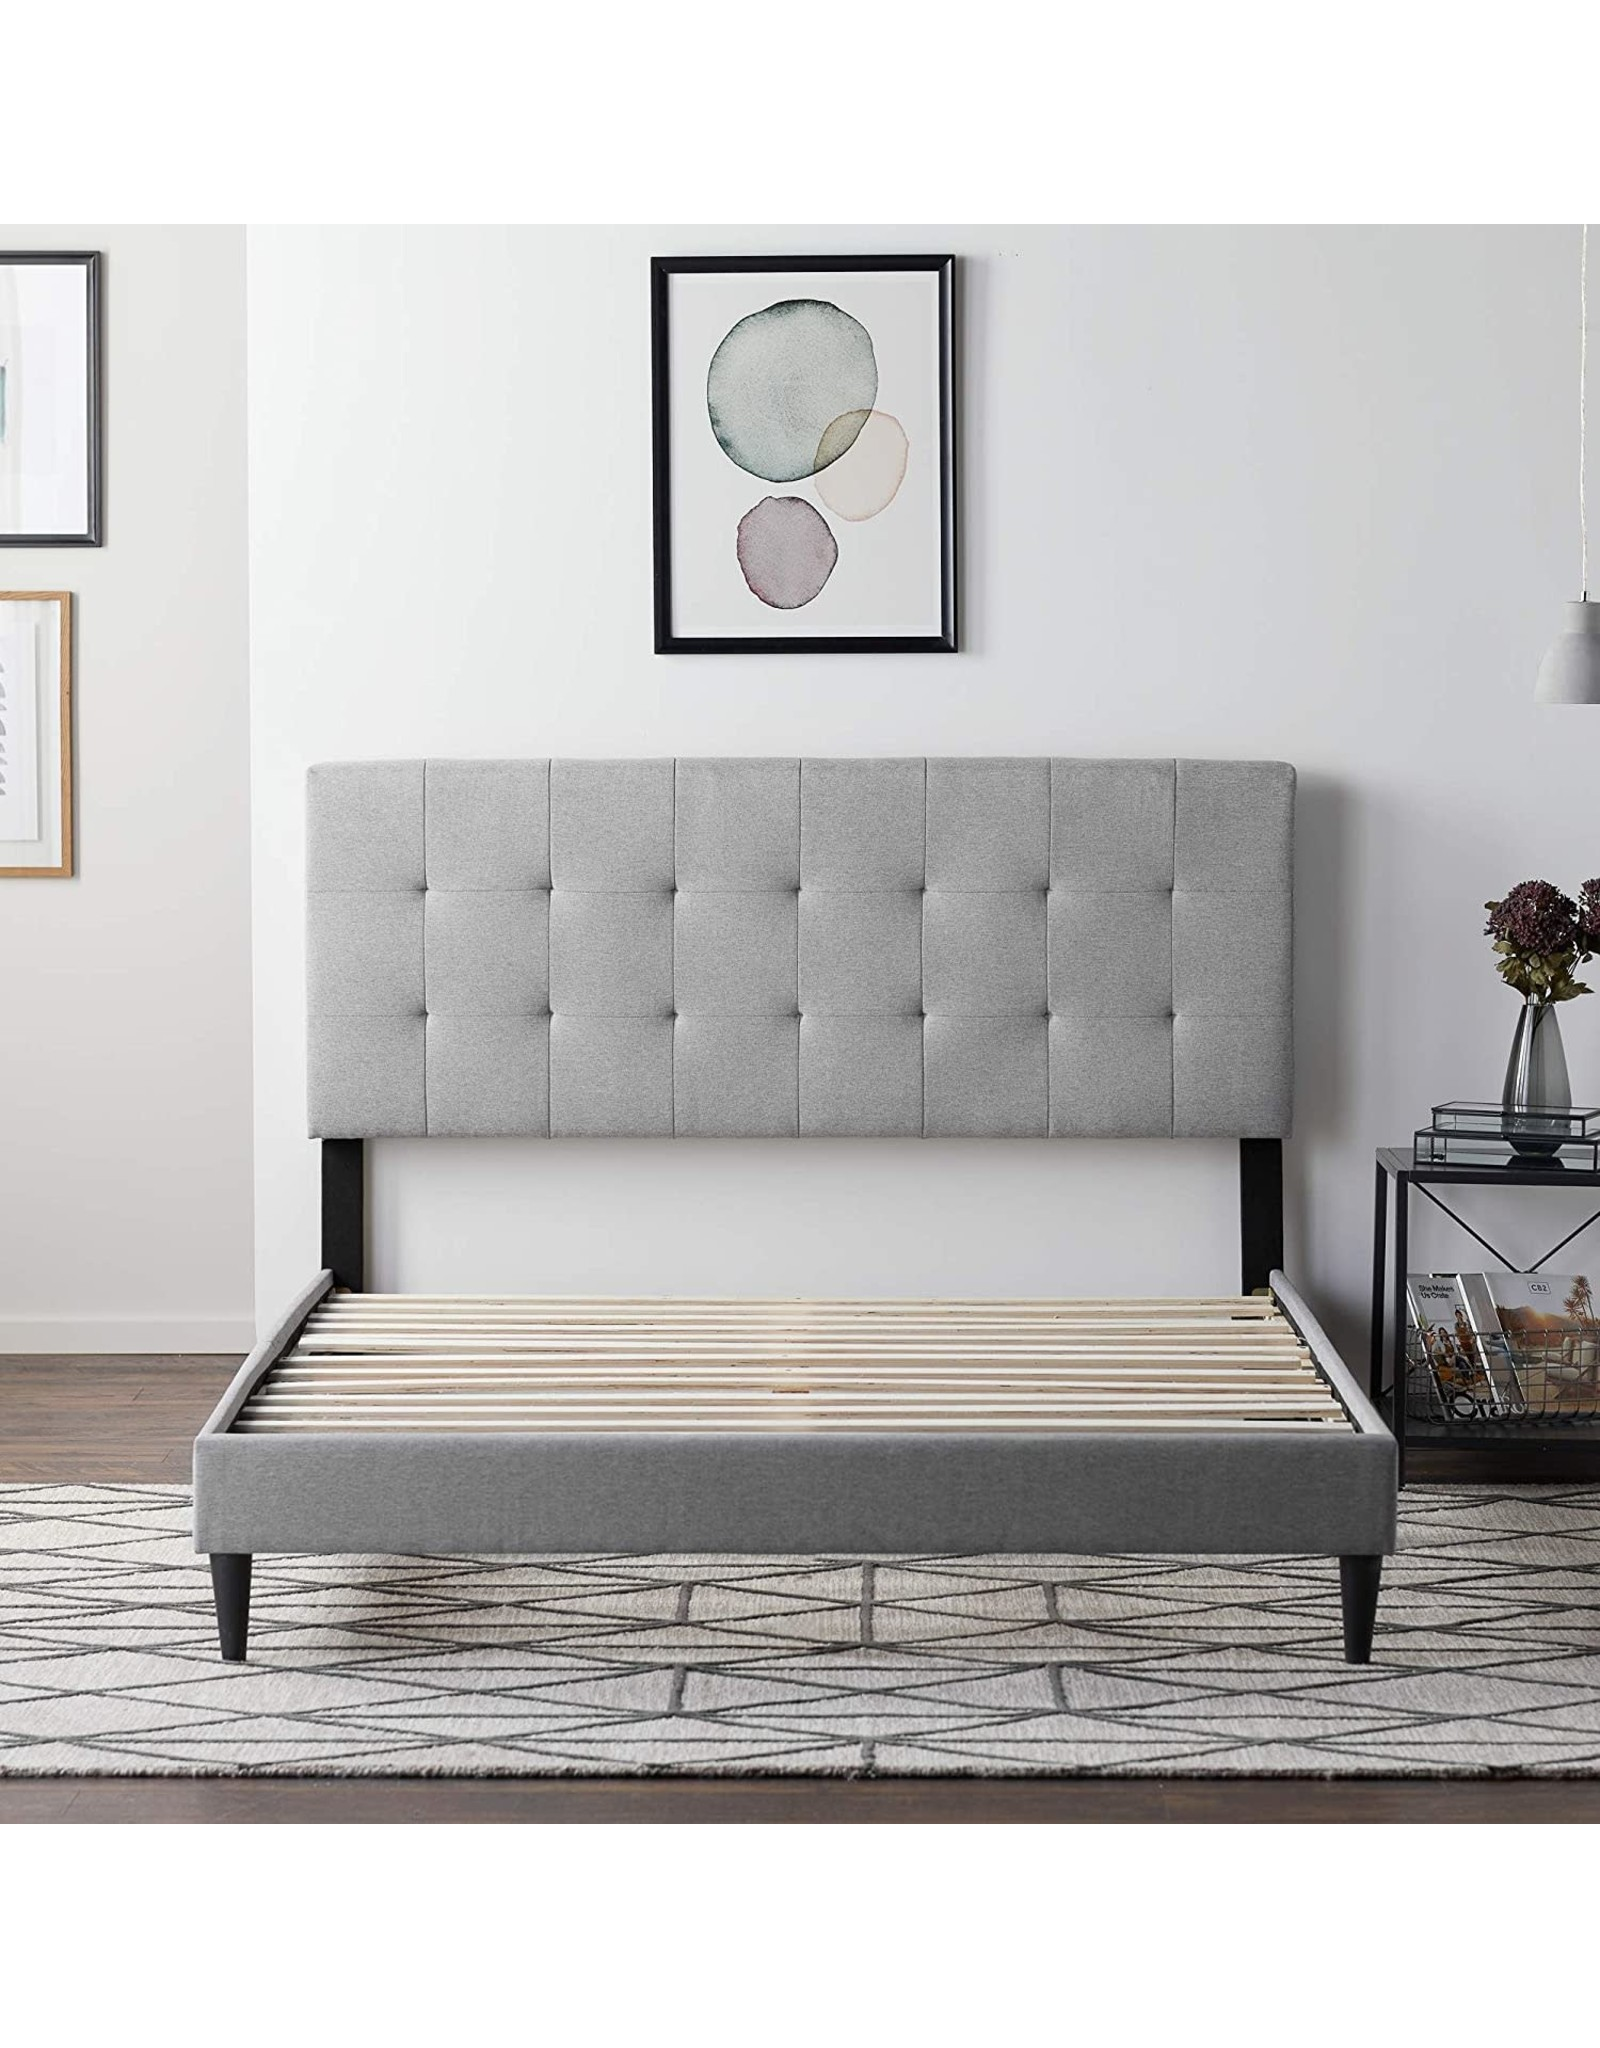 LUCID LUCID Upholstered Bed with Square Tufted Headboard -Linen Inspired Fabric –Sturdy Wood Build –No Box Spring Required Platform, Queen, Stone